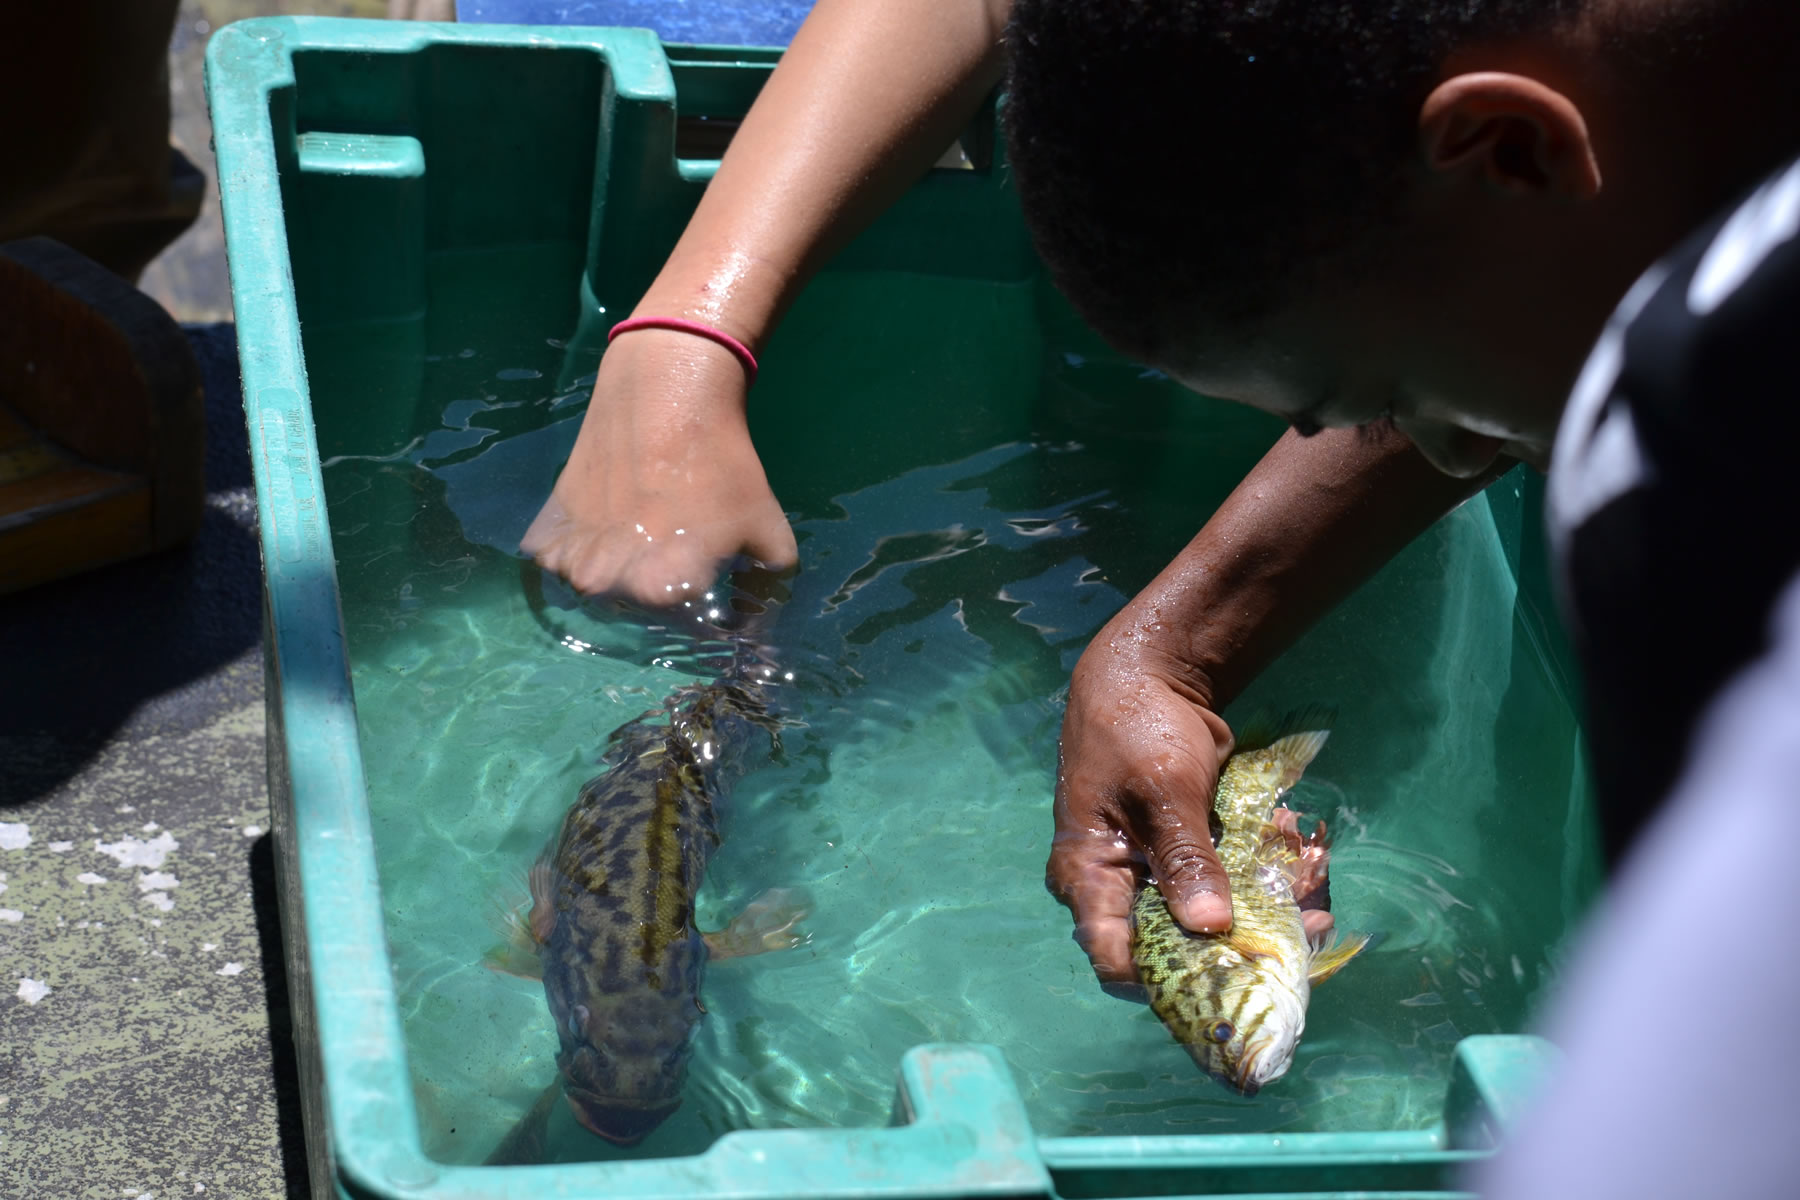 Young urban youth looking and touching live fish.